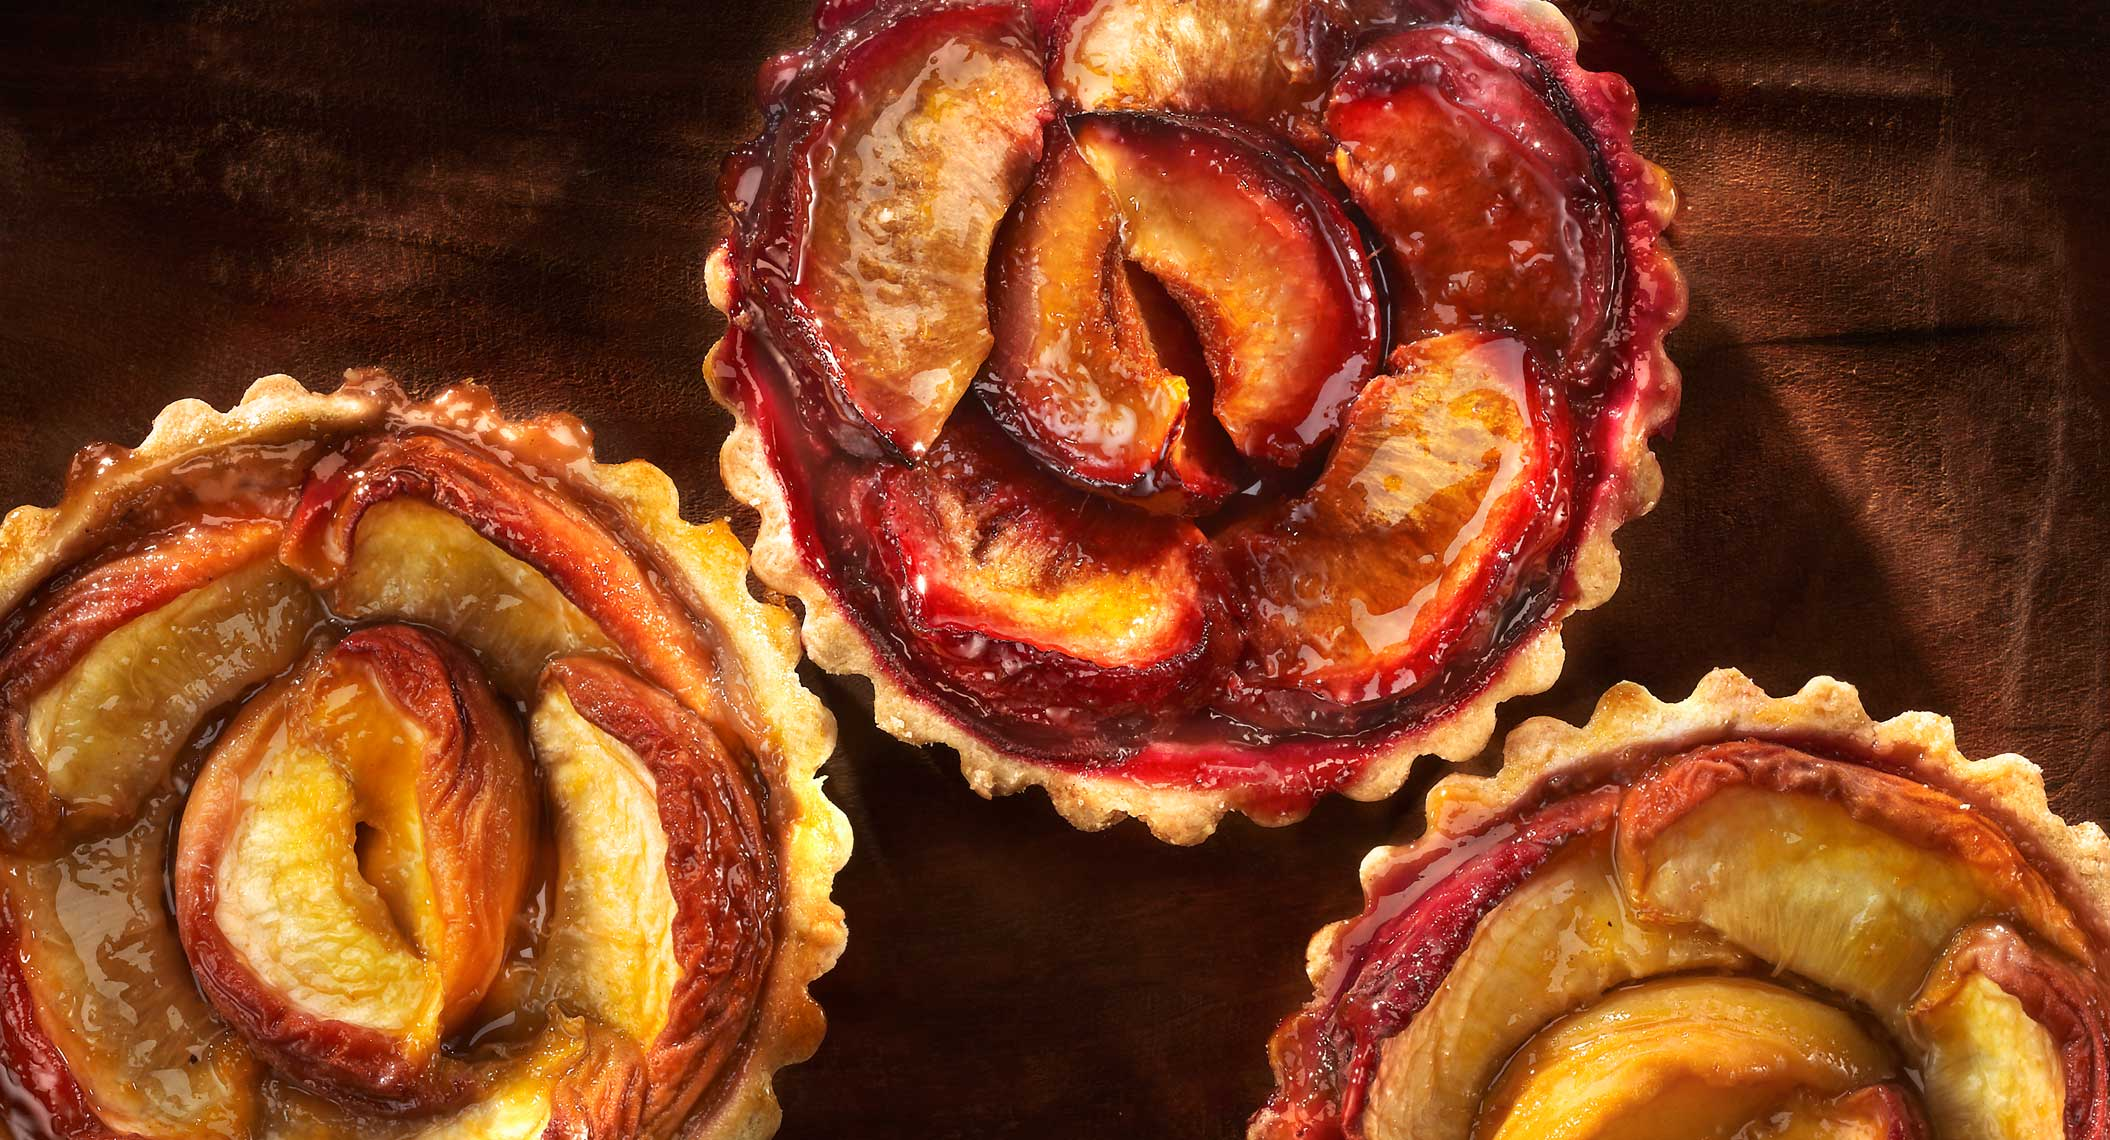 Glasshouse Assignment - David Bishop - Food Photography - Nectarine and Plum Tarts